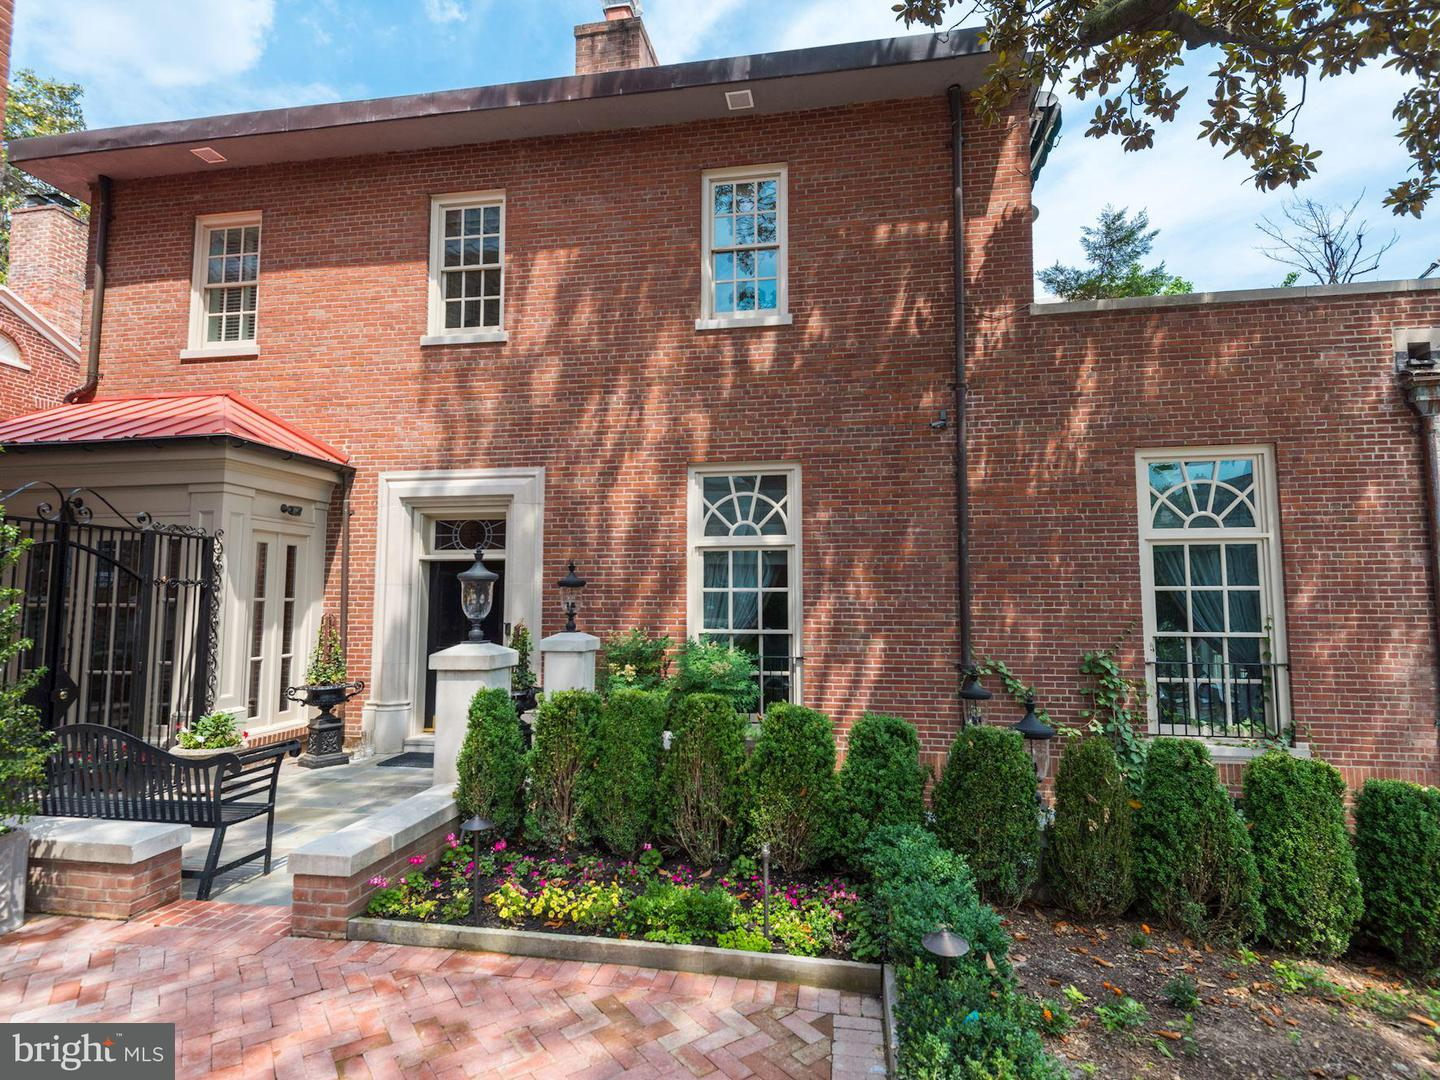 Other Residential for Rent at 3009 N St NW Washington, District Of Columbia 20007 United States